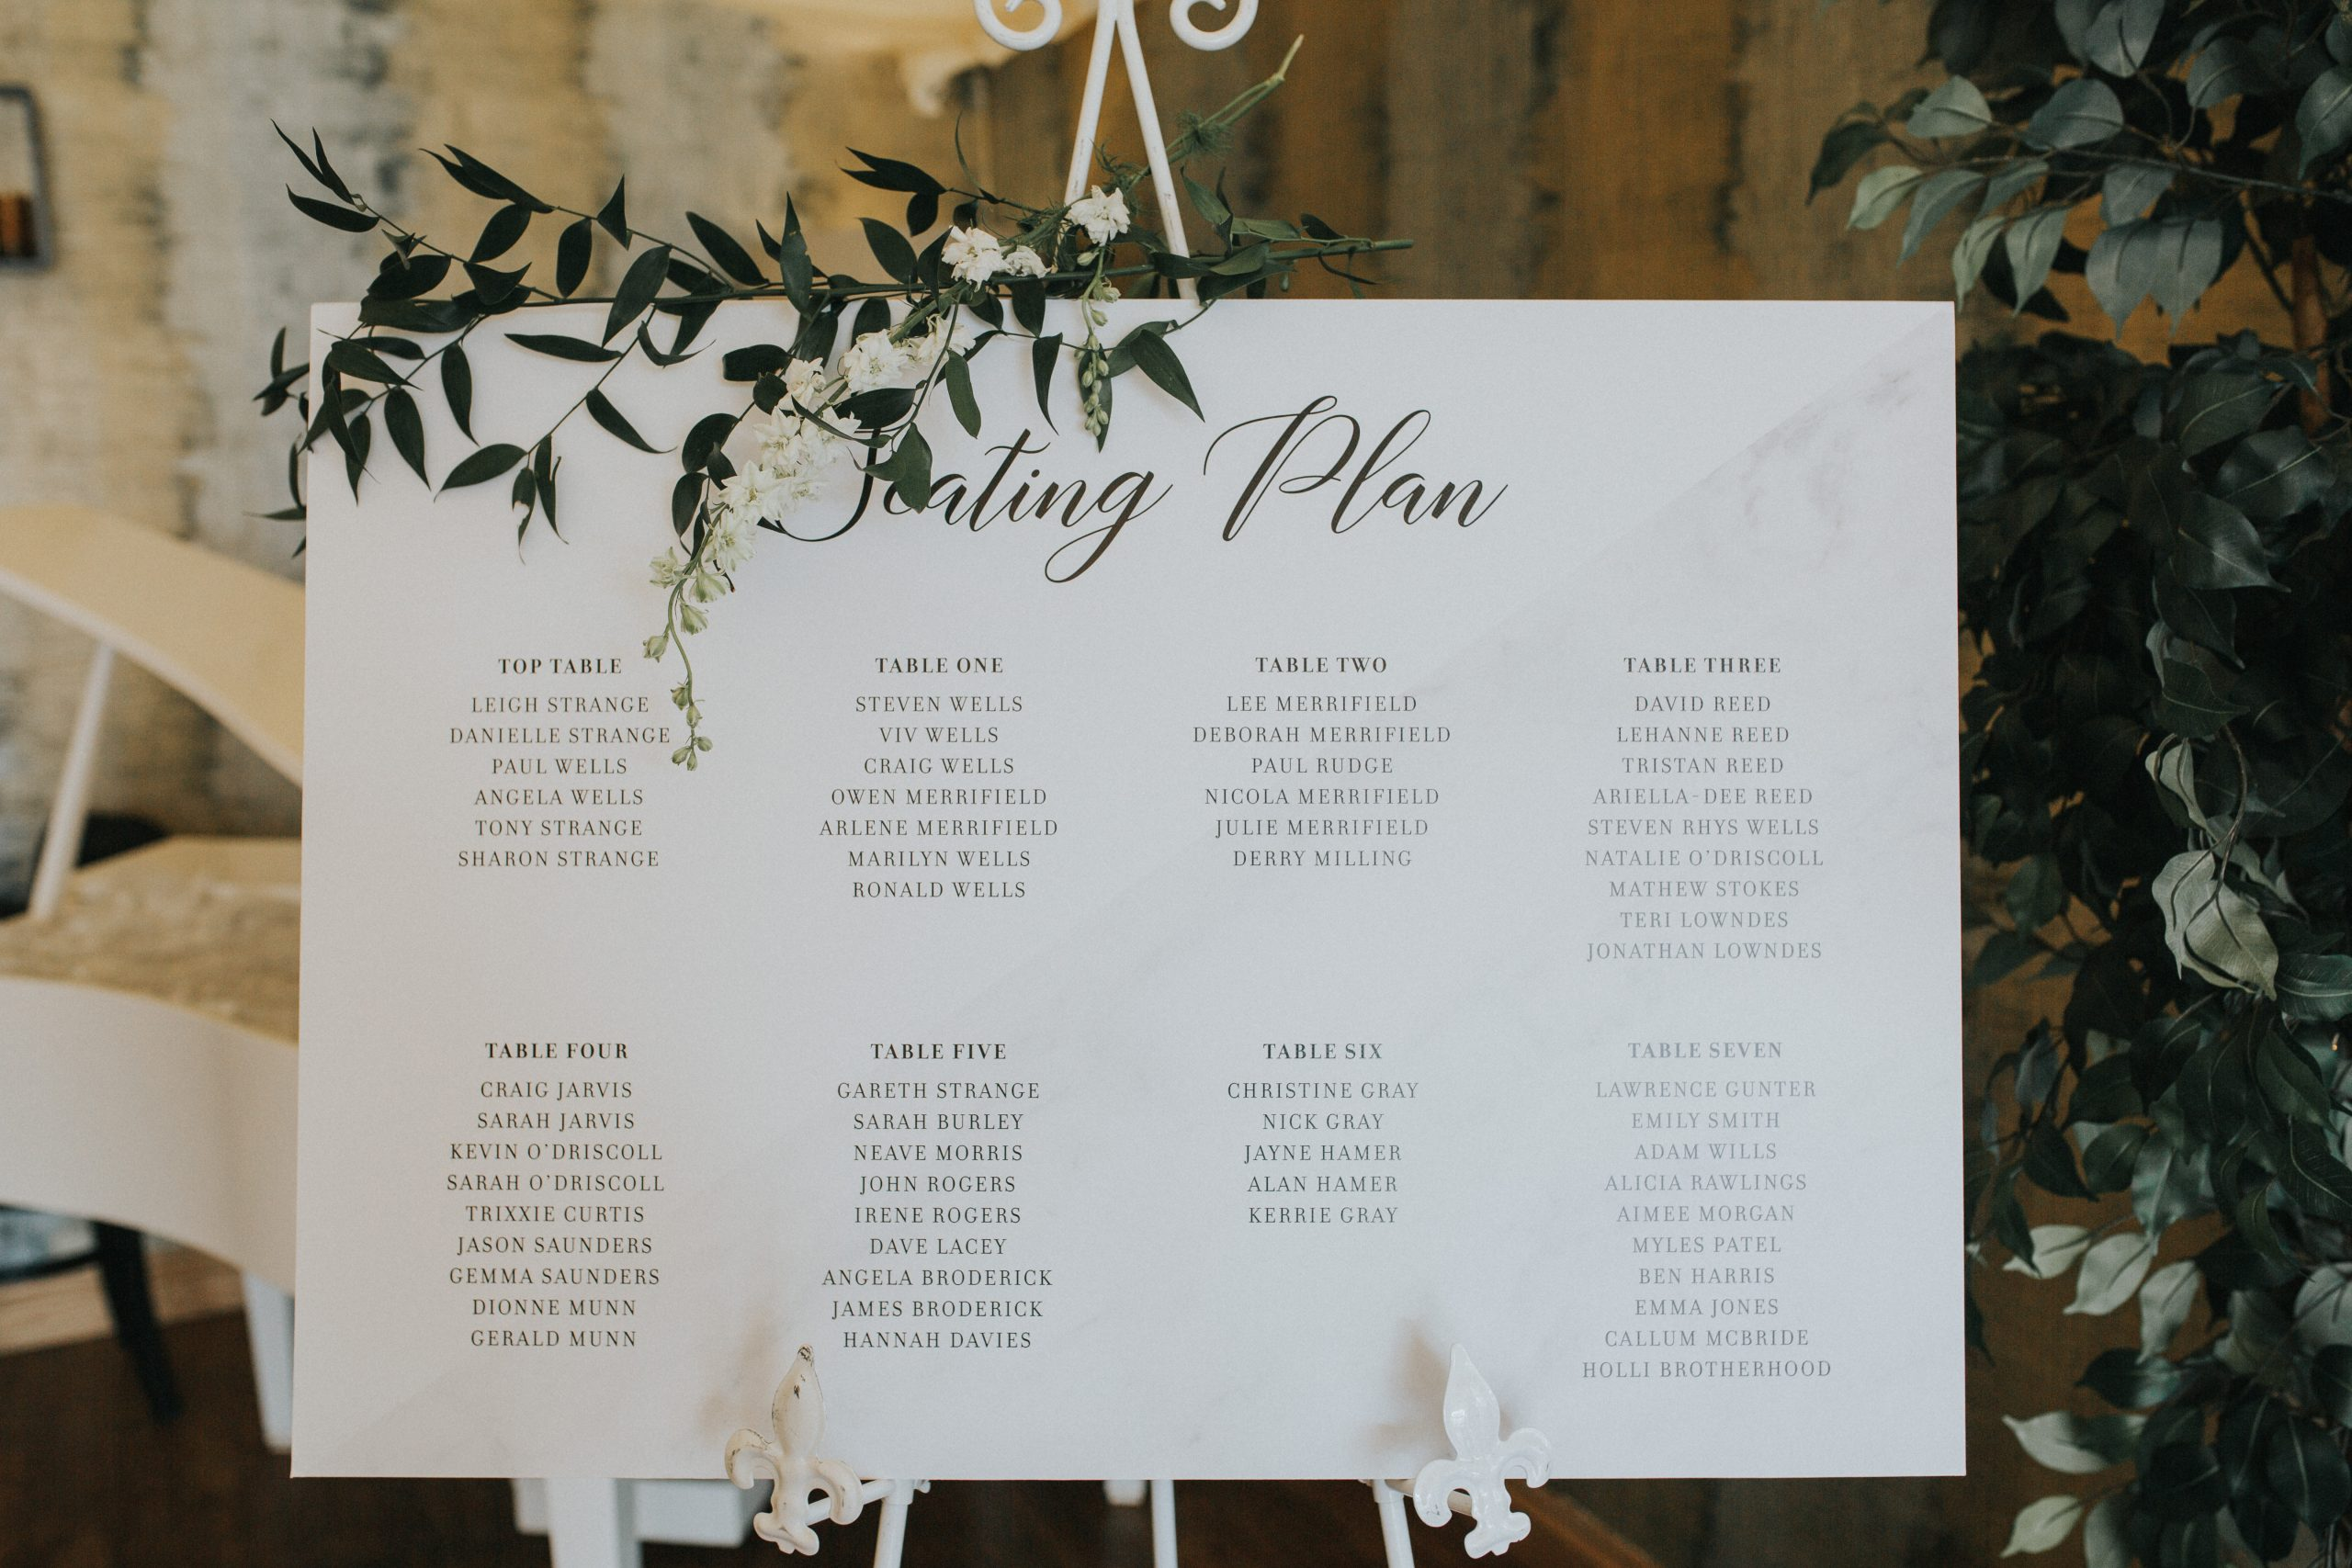 Simple and elegant table layout design